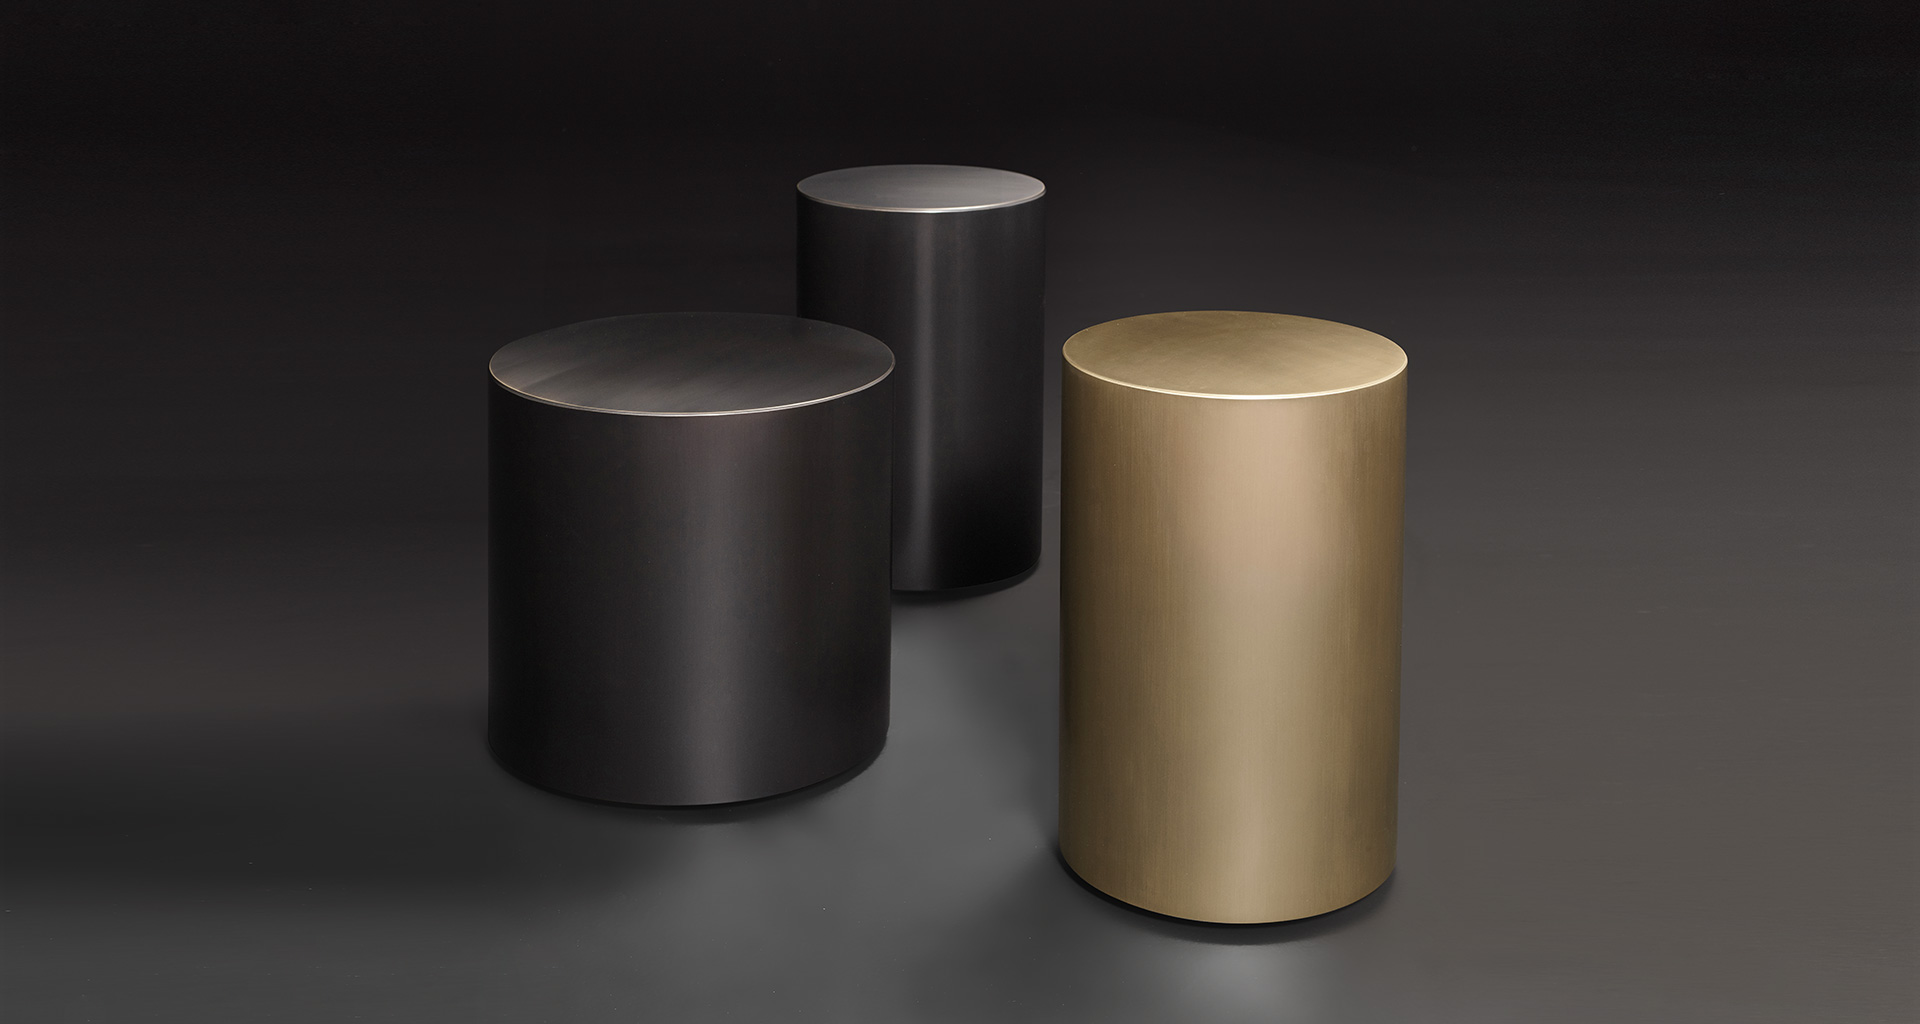 Edo is a bronze small table with wheels from Promemoria's catalogue | Promemoria